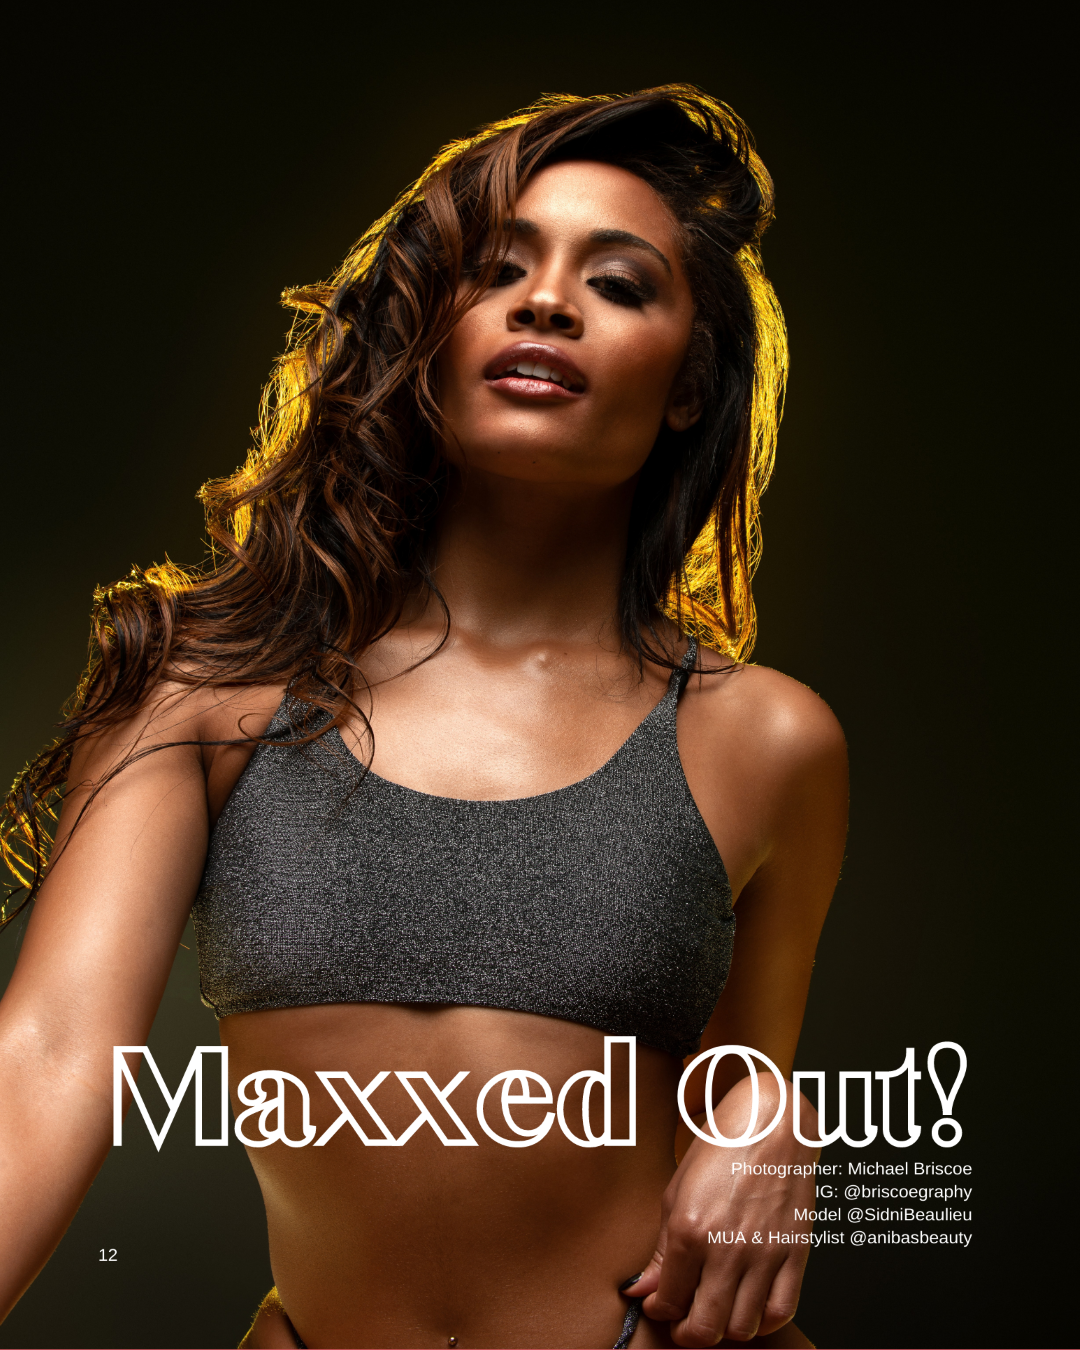 Maxxed Out!